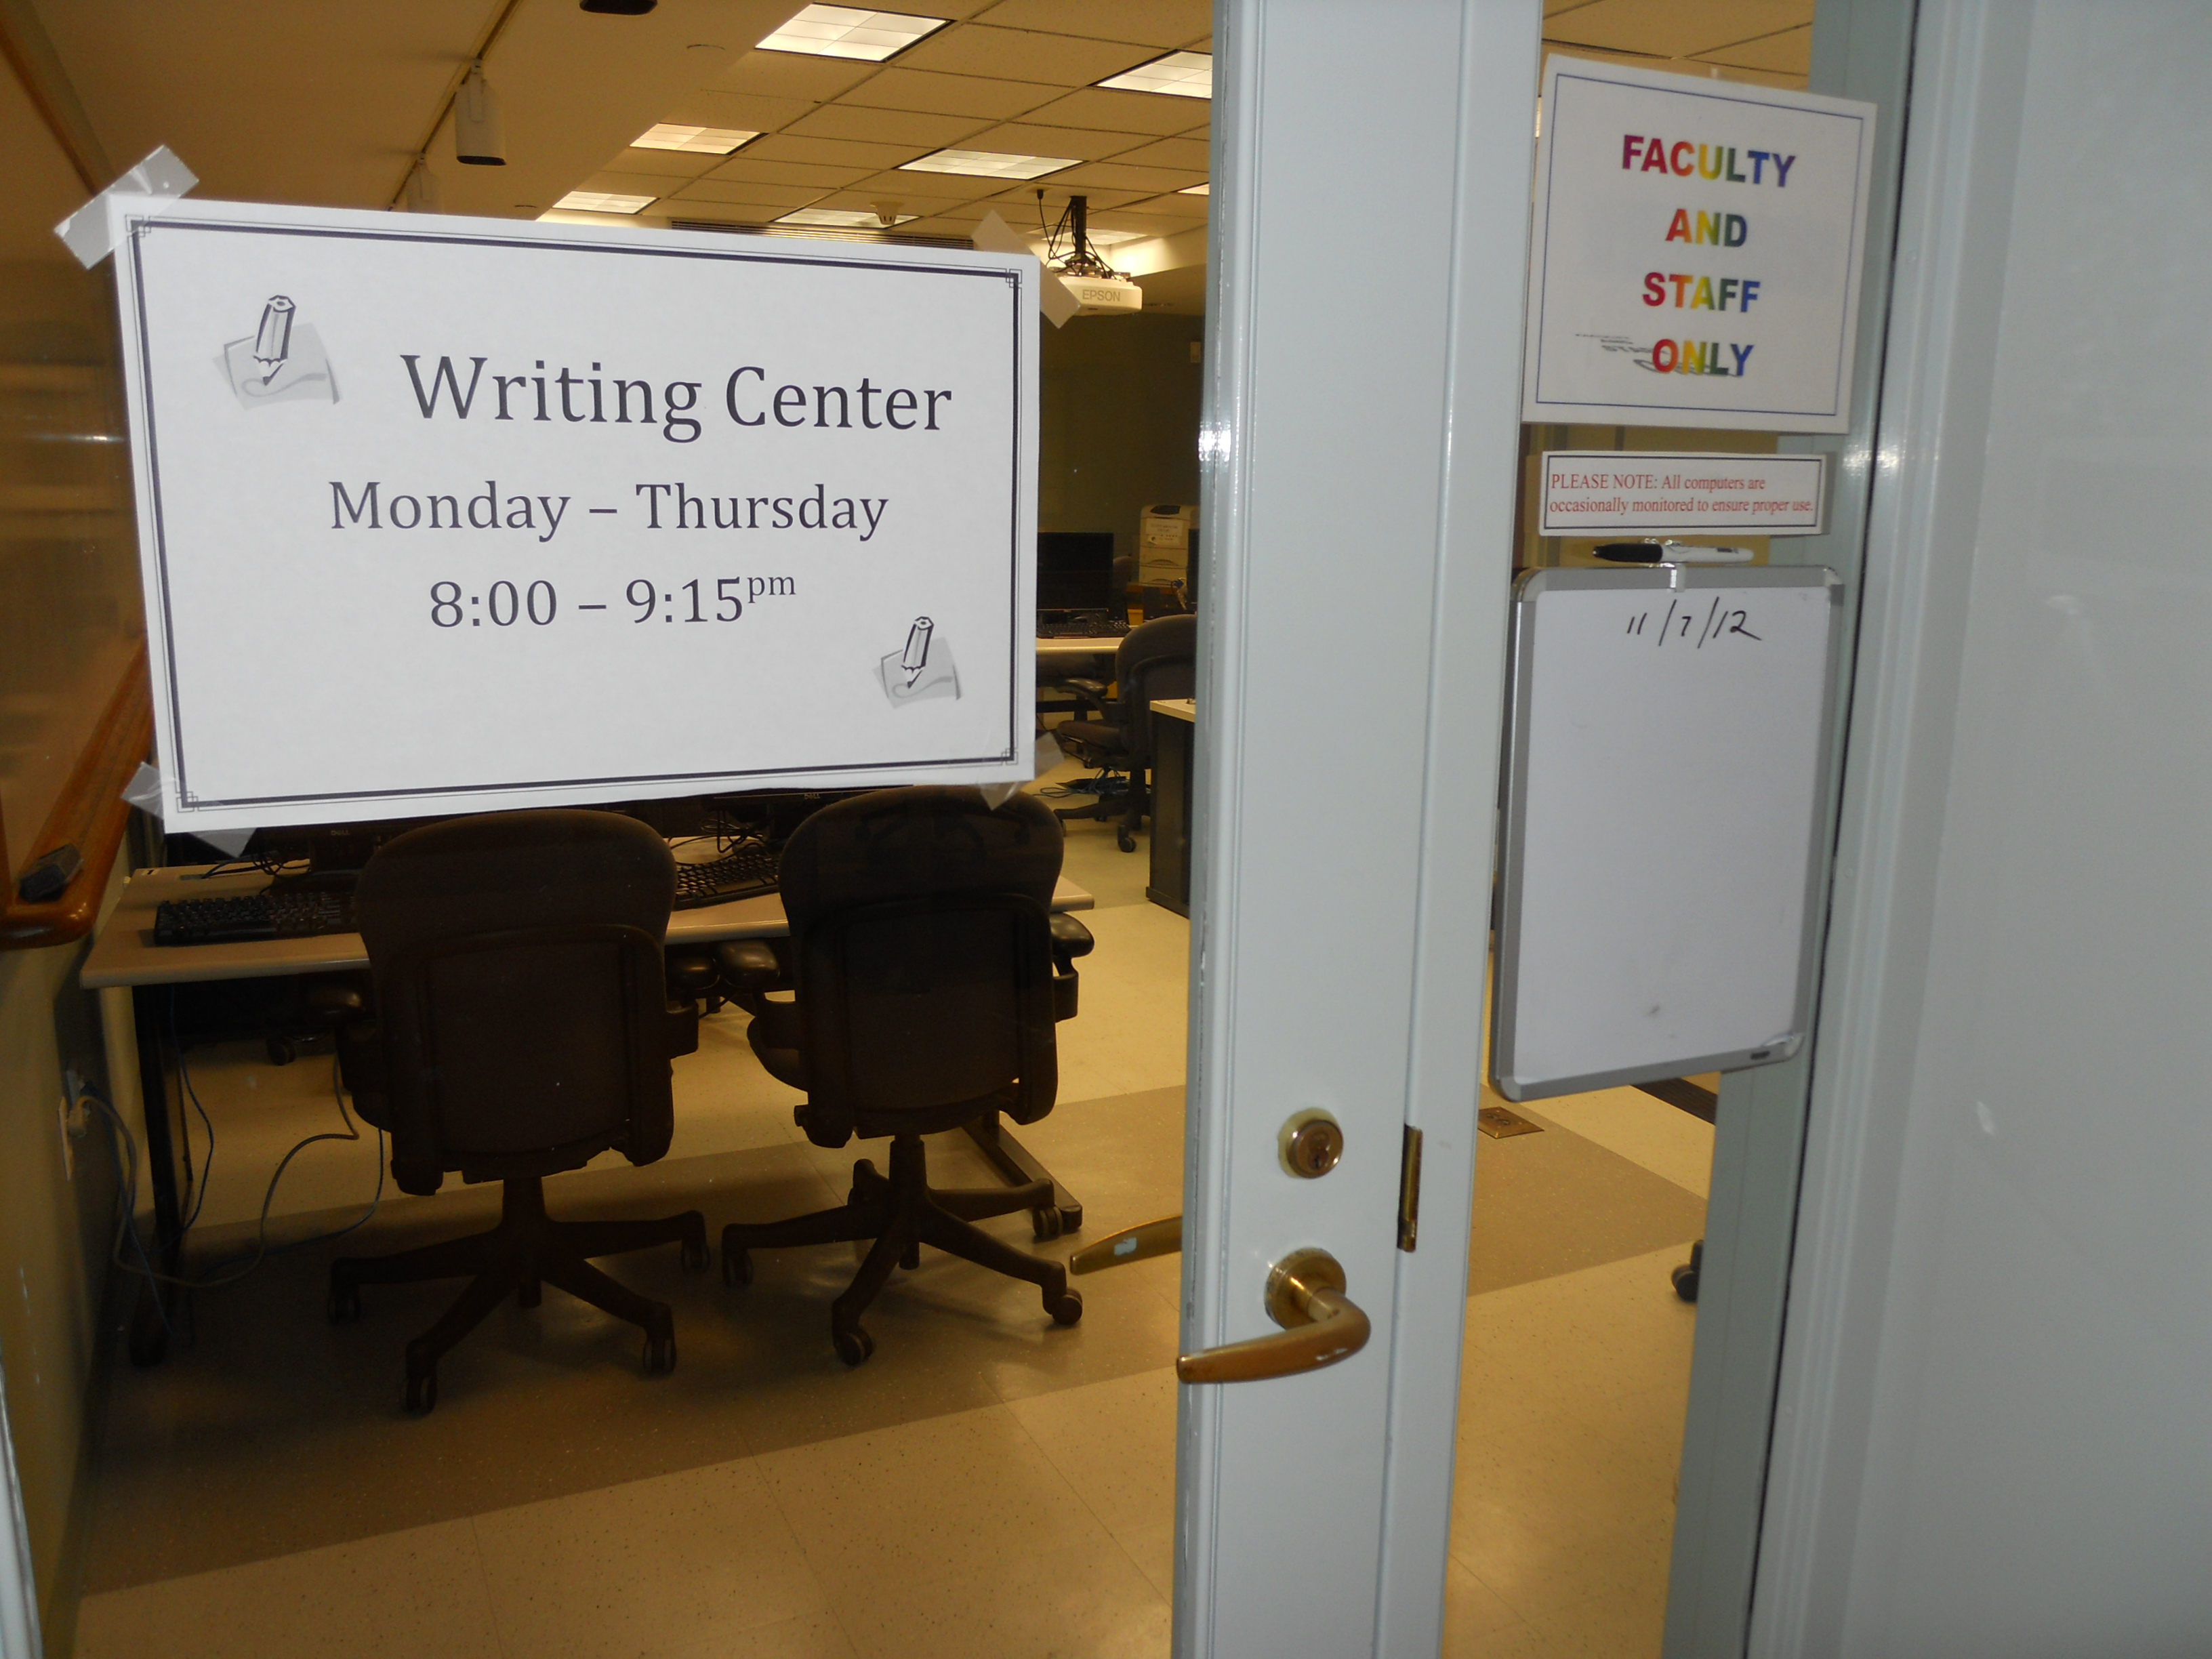 The Writing Center, Photo by Sharon Pei